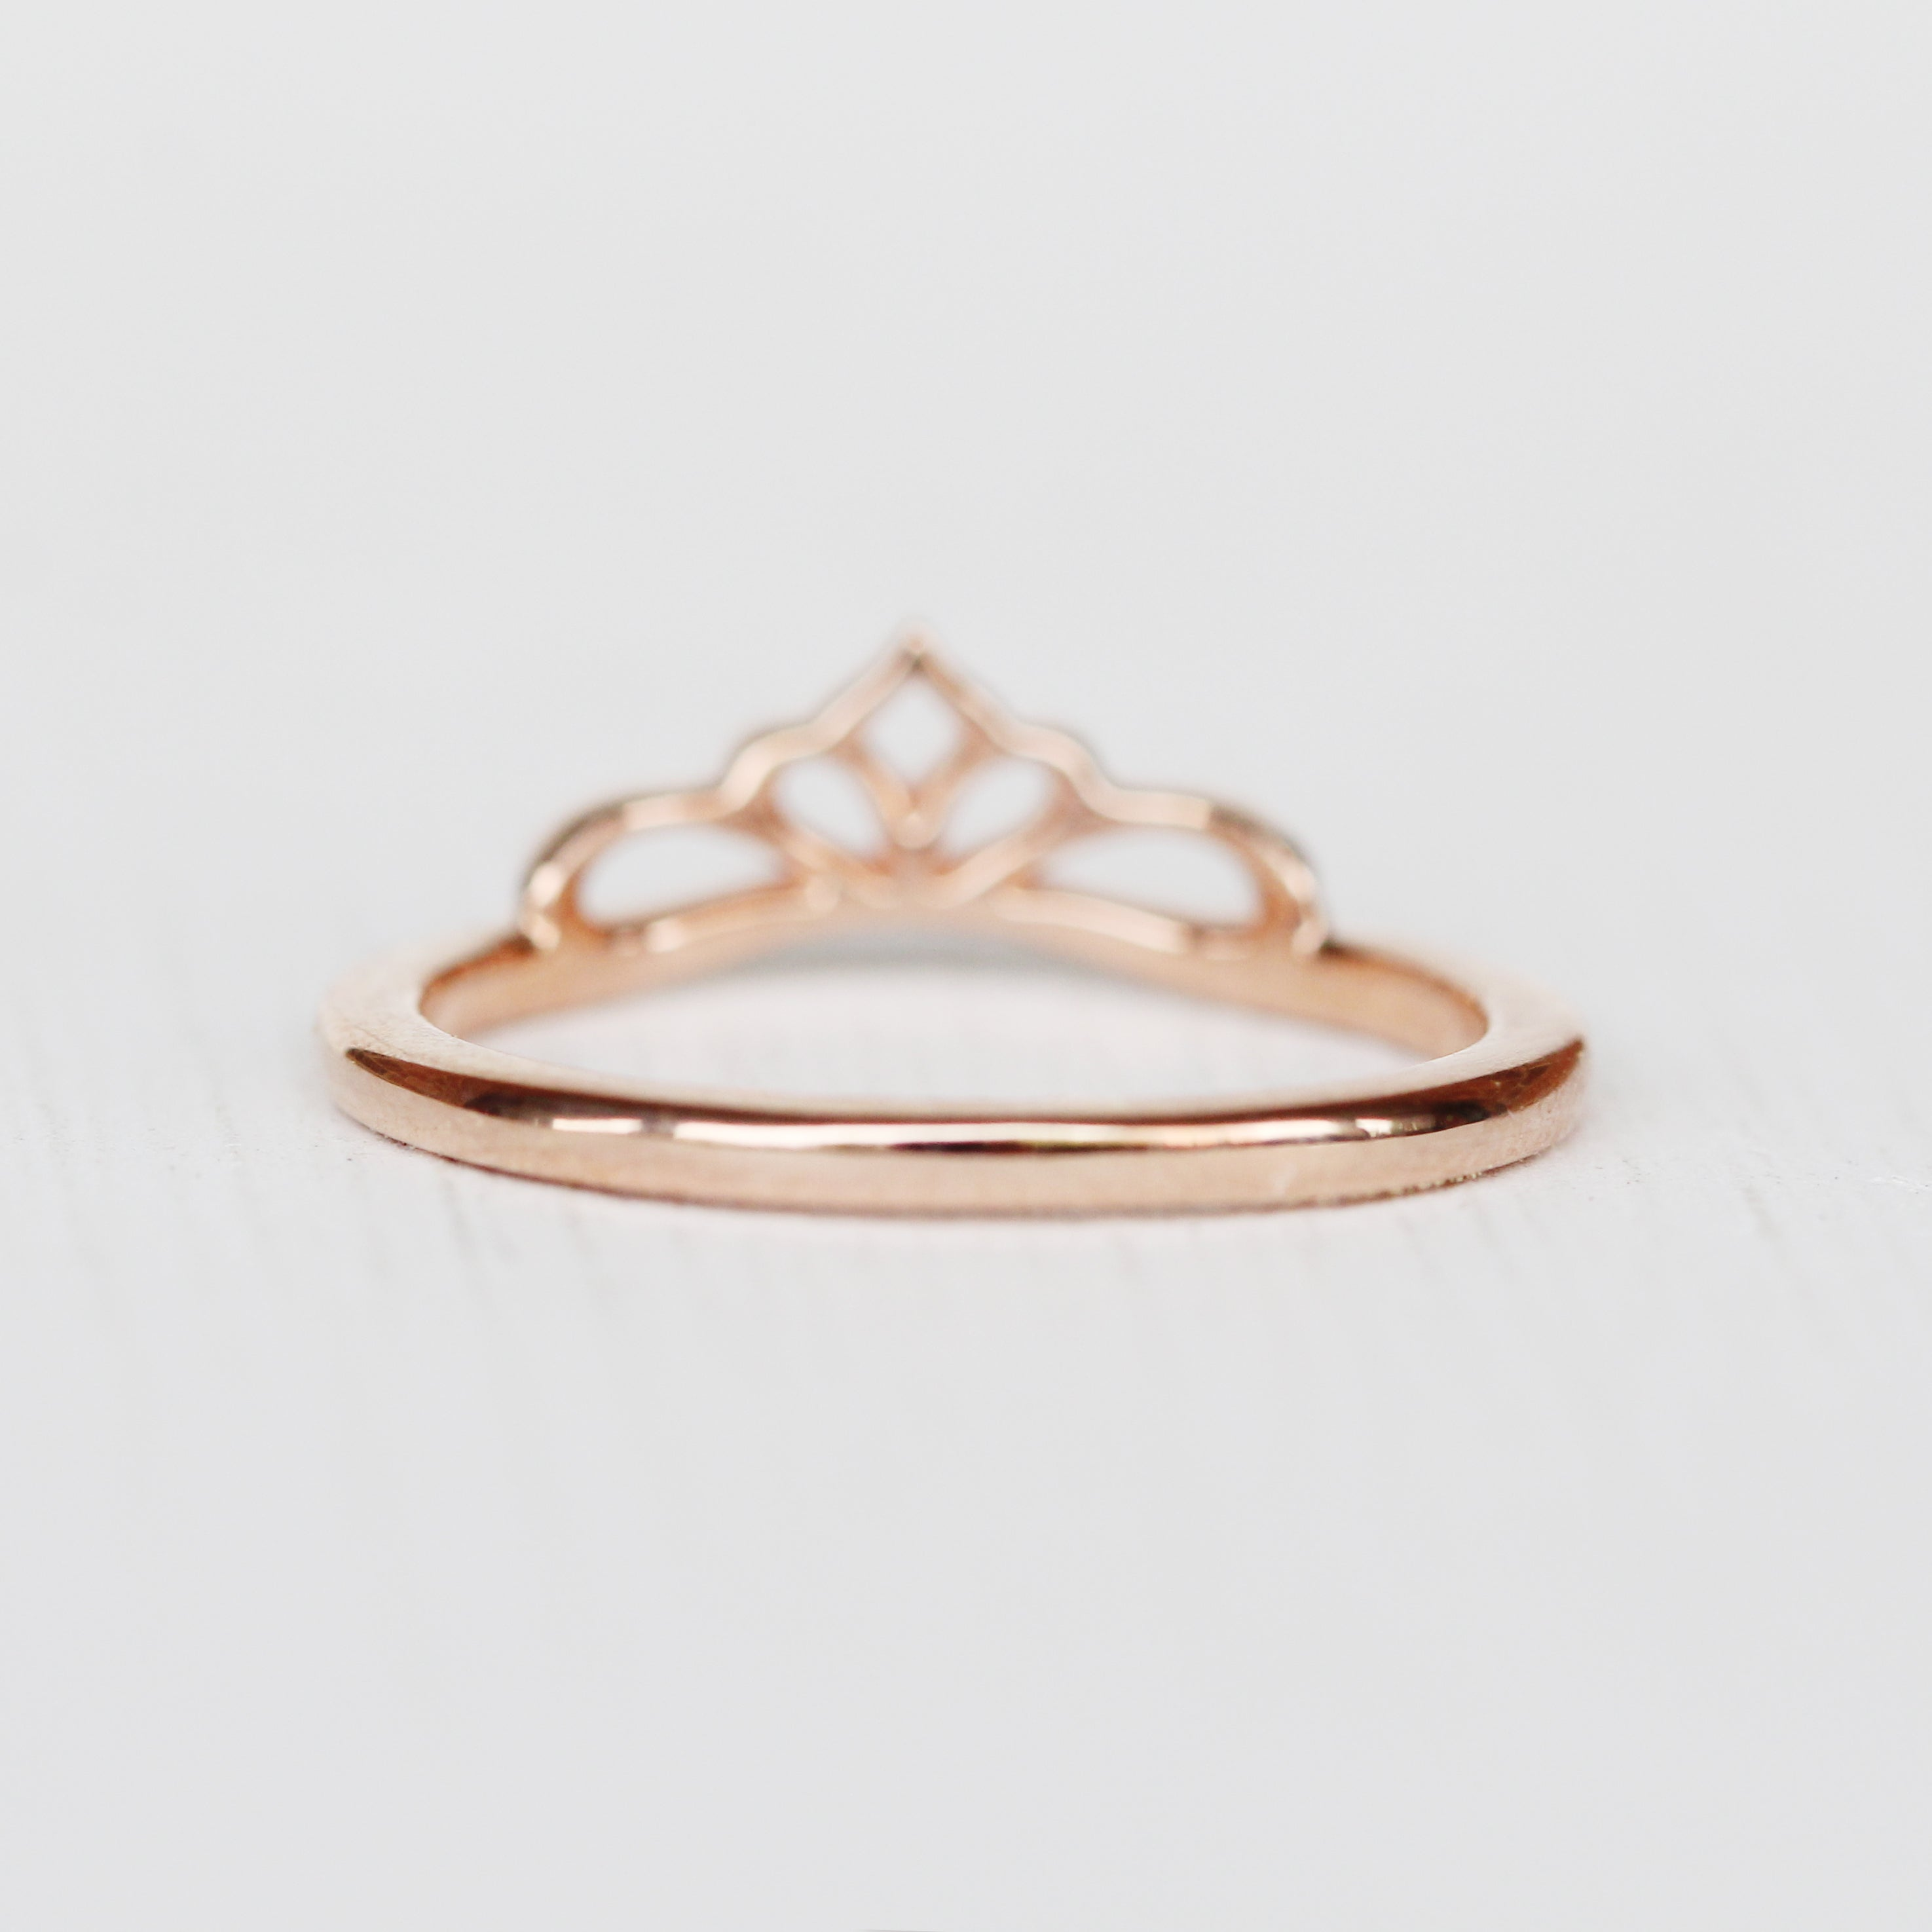 Liesbeth Ring -  Stackable band in 14k Gold - Made to Order